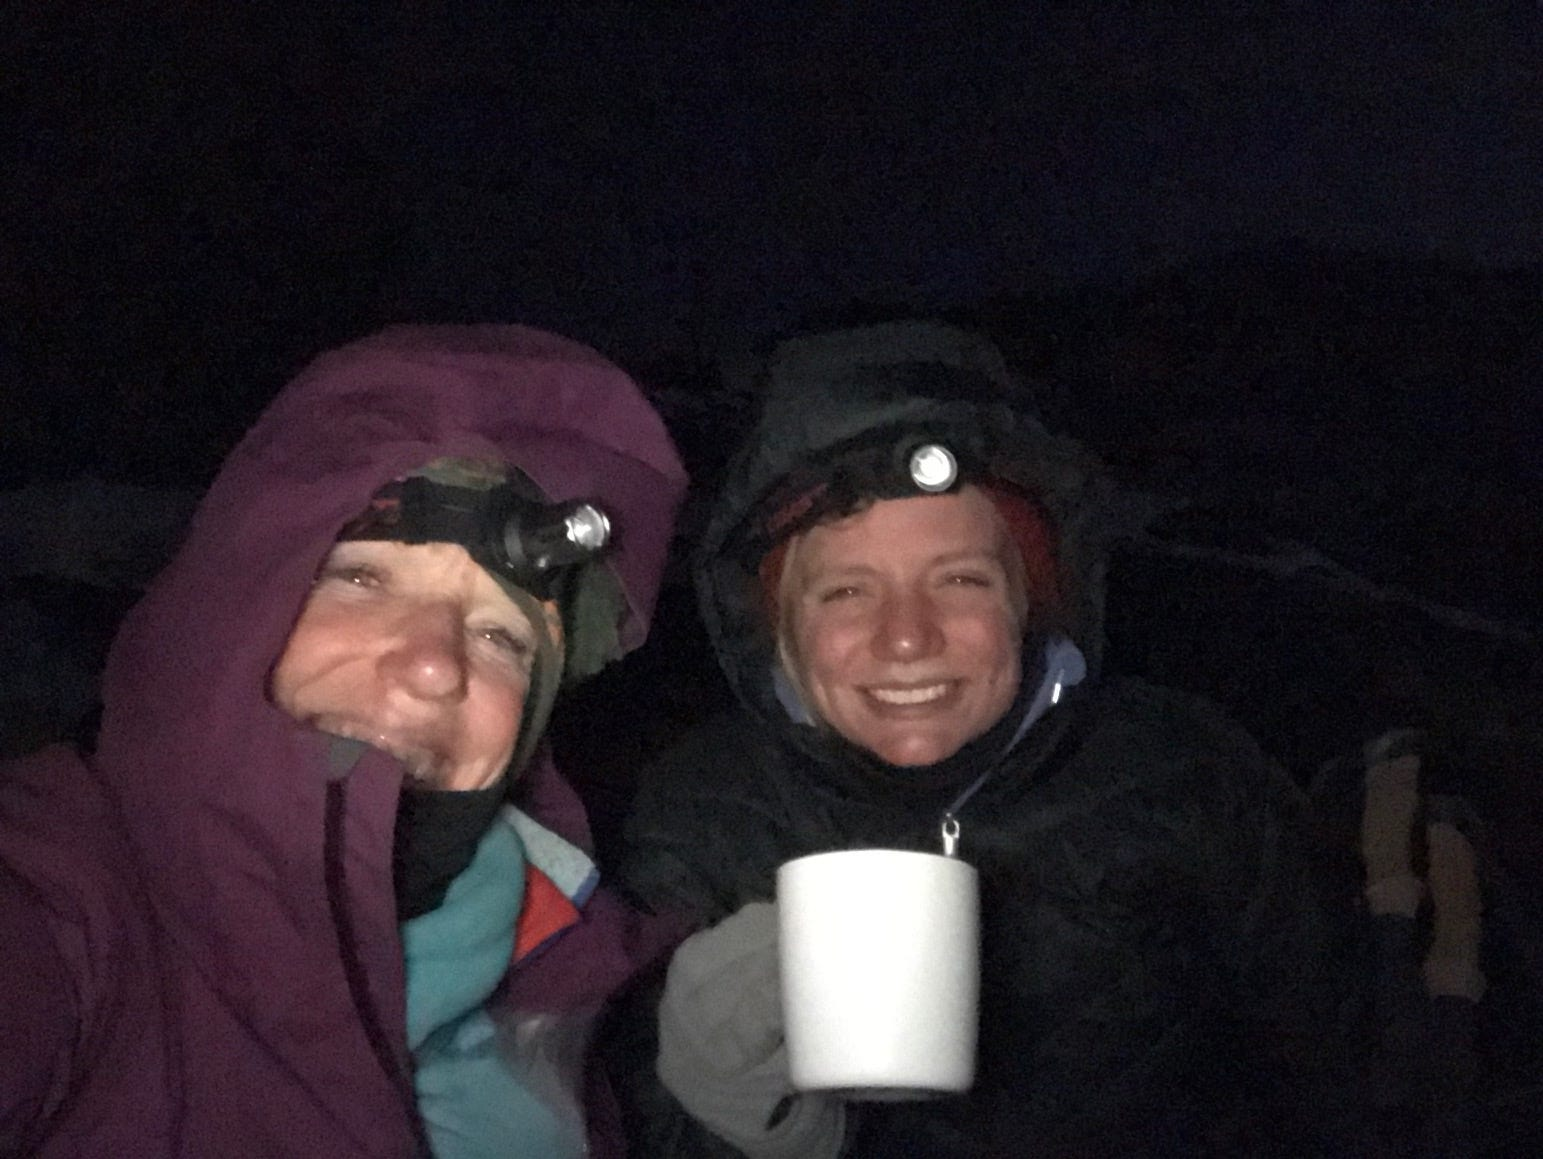 Kirby Adams and Jordan Grantz 45 minutes from summit of Mount Kilimanjaro, Tanzania